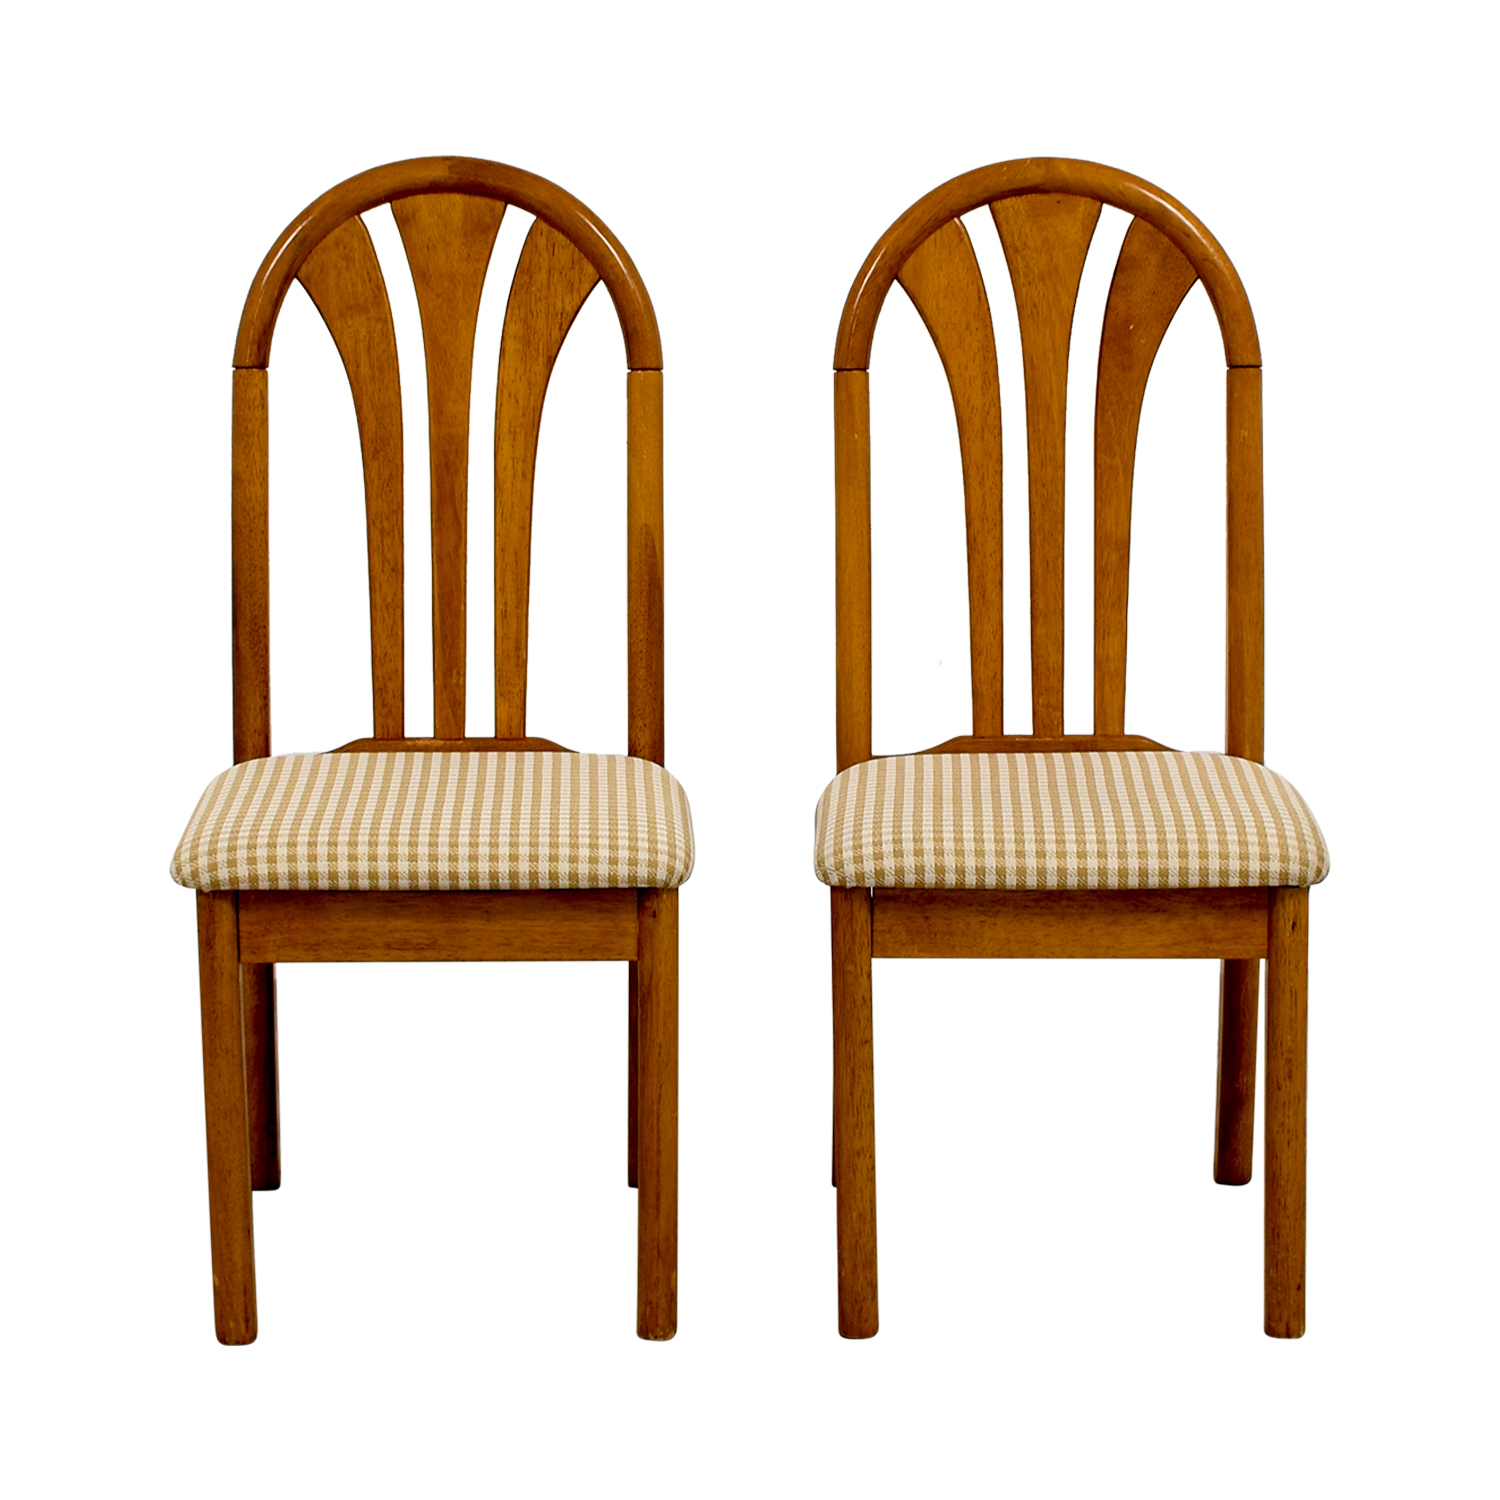 Gingham Upholstered Wood Chairs on sale